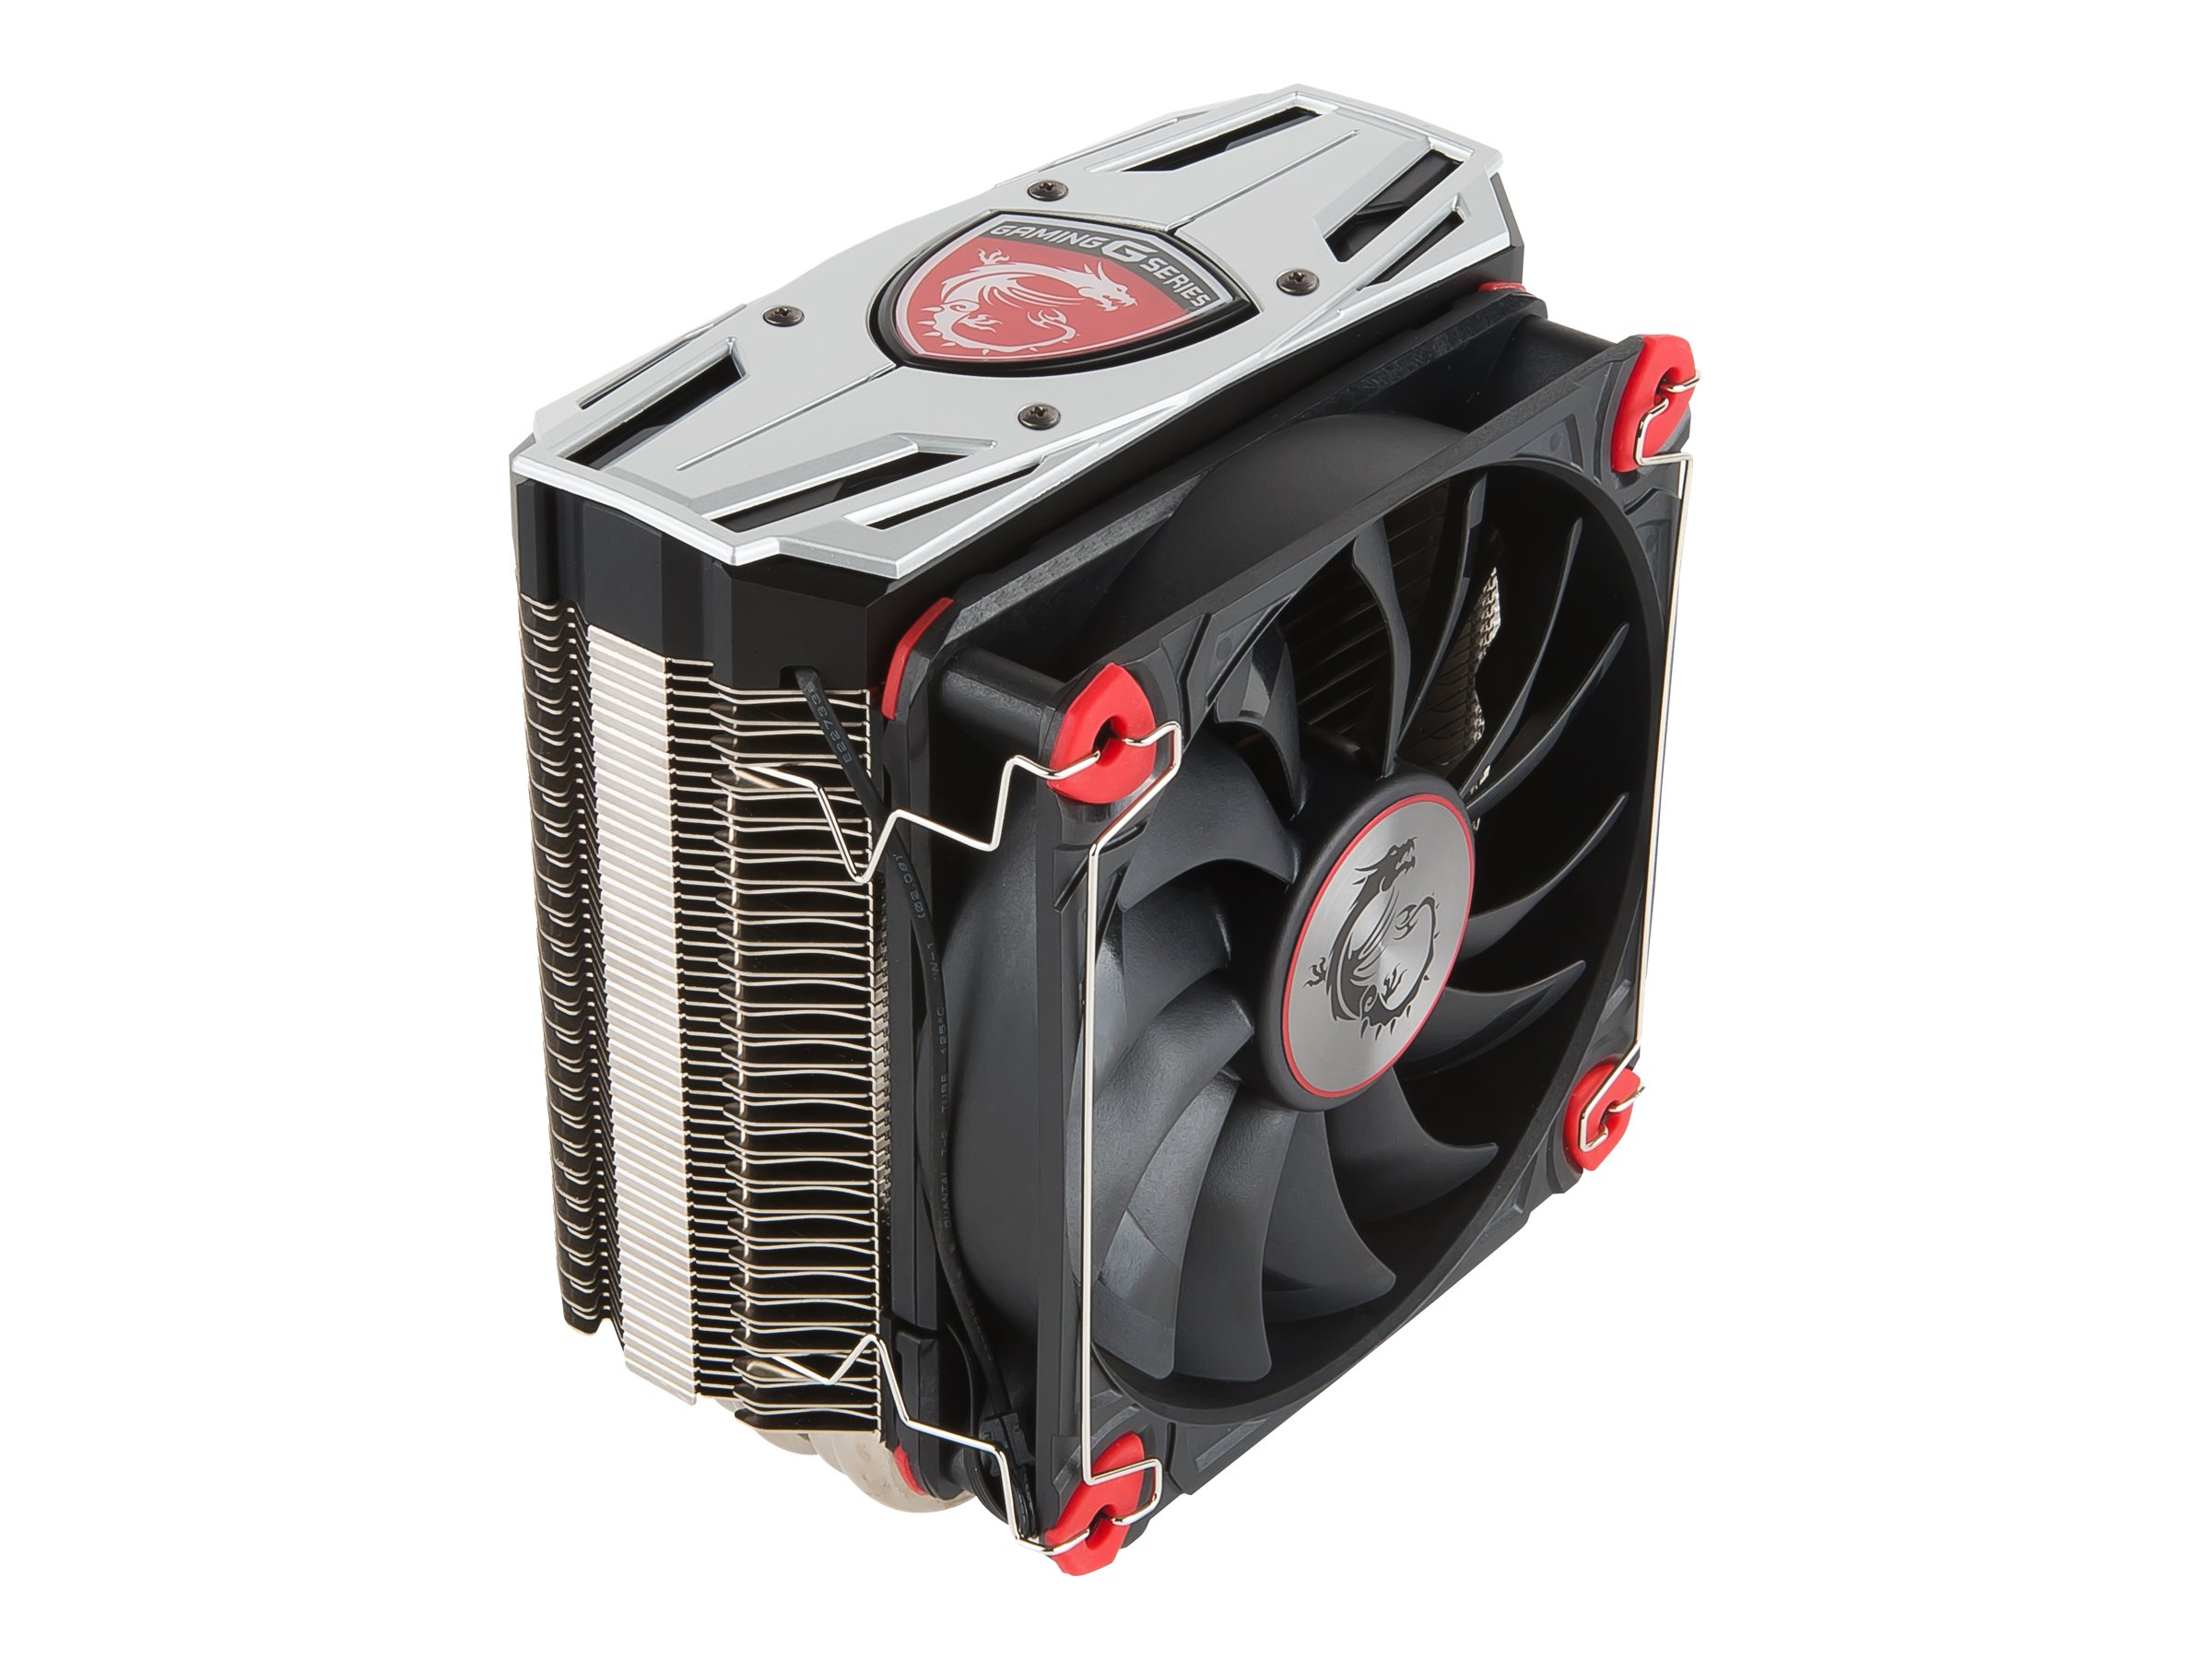 Image for Msi - Processor Cooler from Circuit City